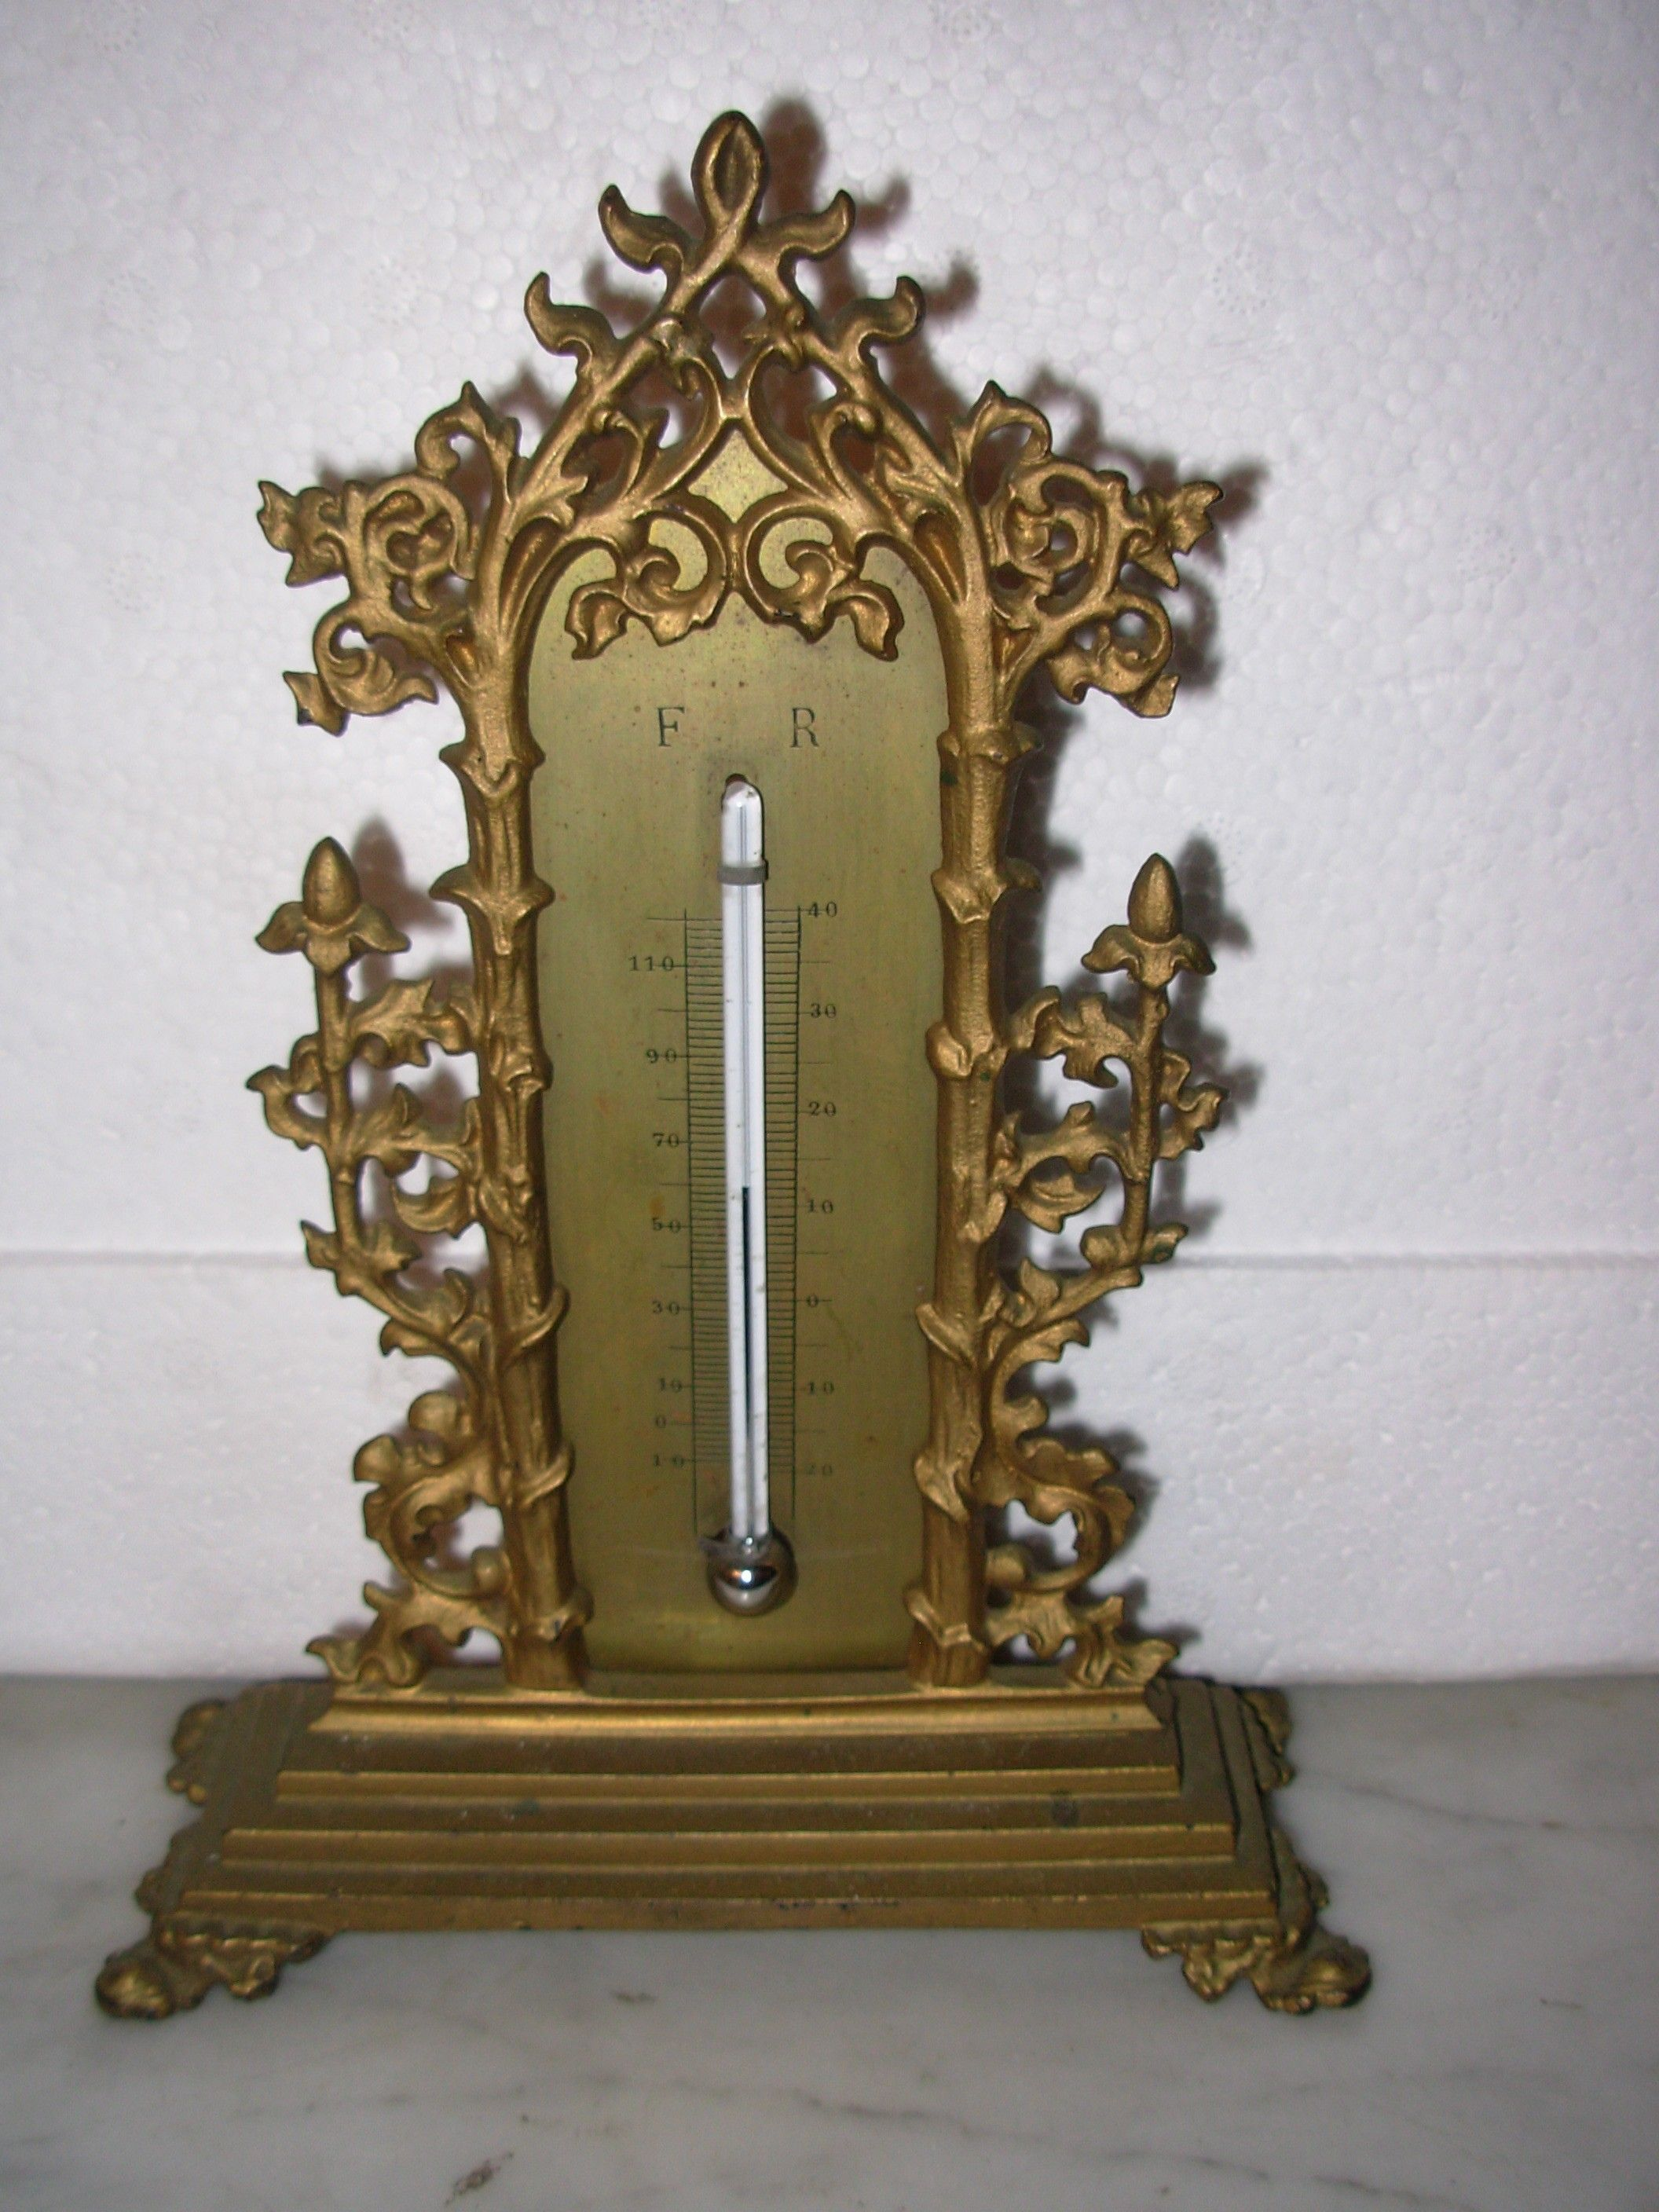 a gothic revival gilt brass thermometer 19thc the thermometer has